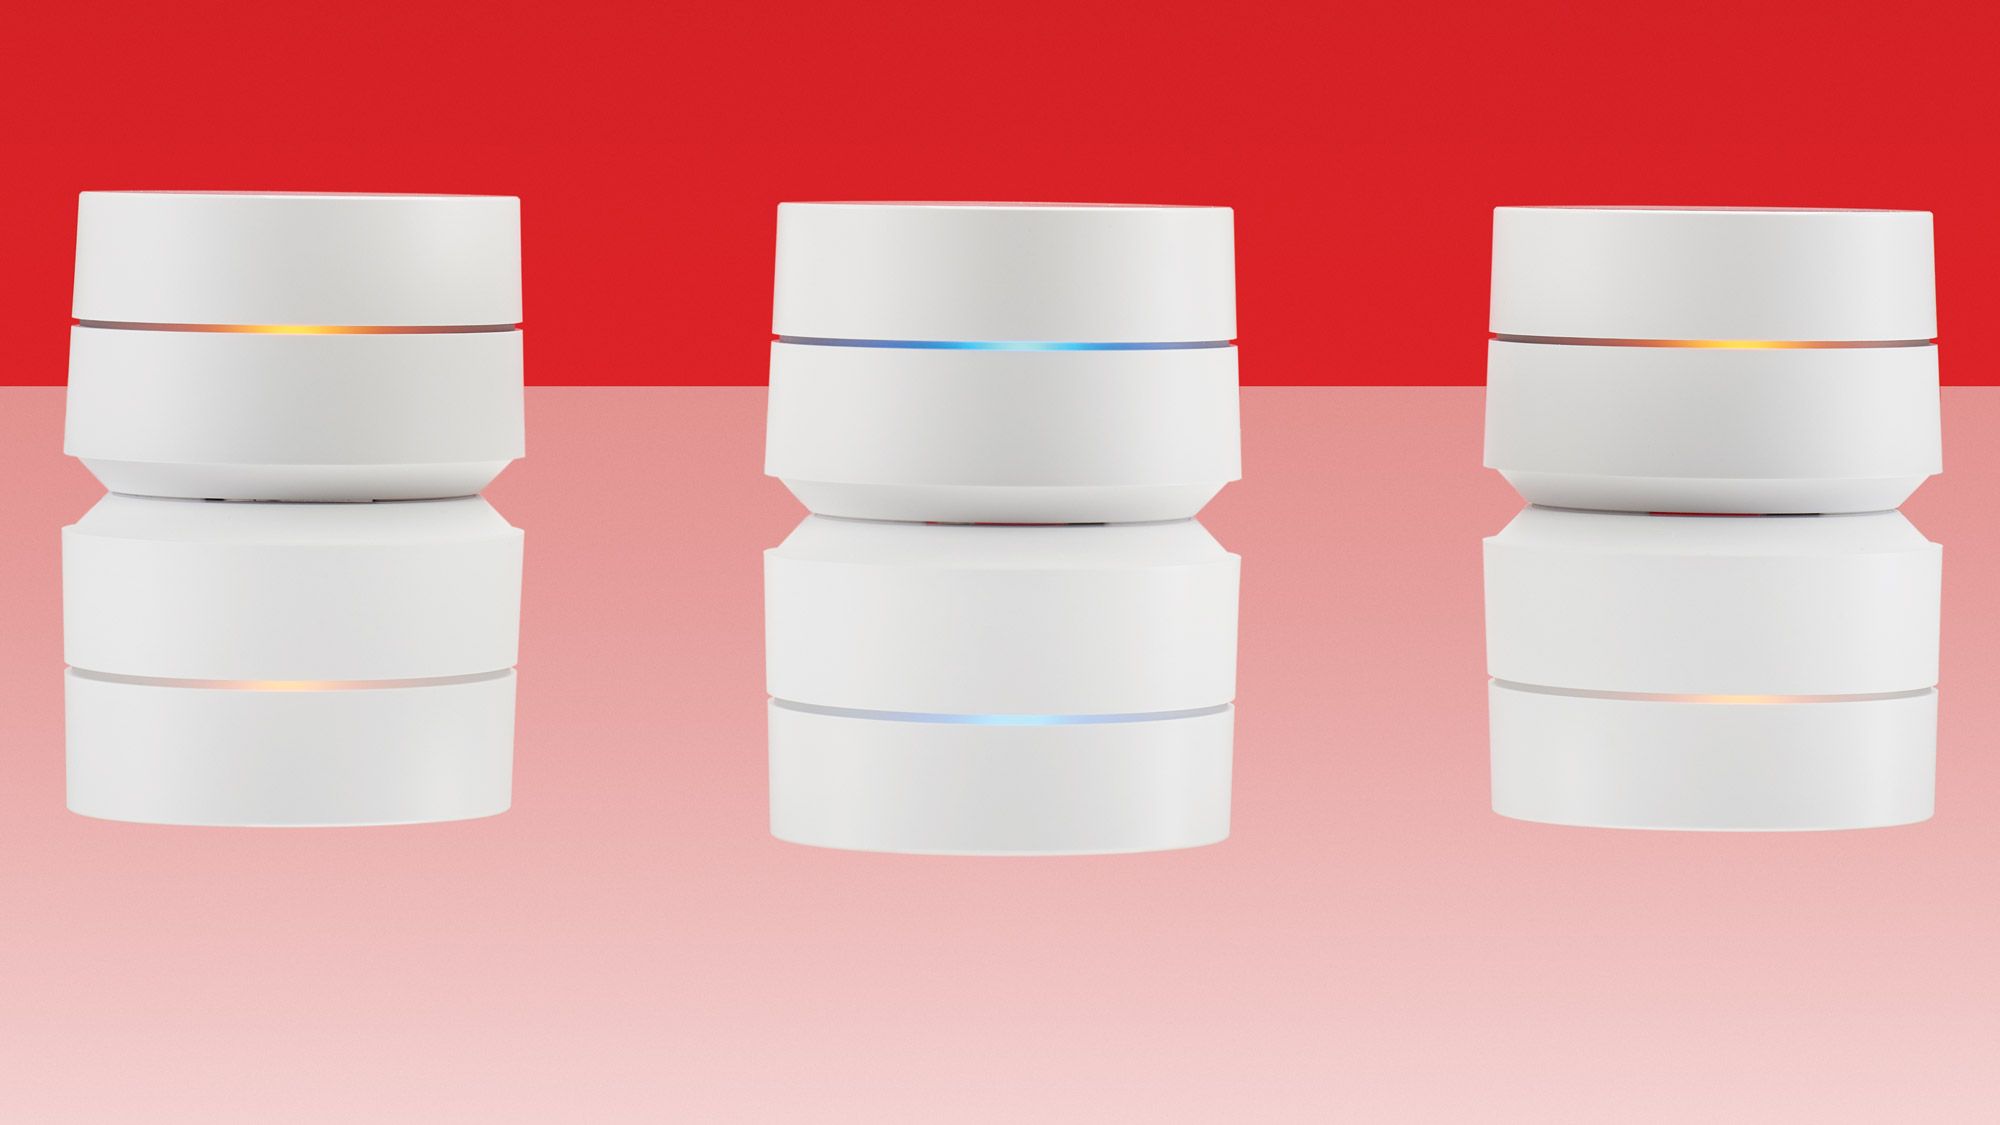 Best mesh Wi – Fi routers 2020 the best wireless mesh routers for large homes